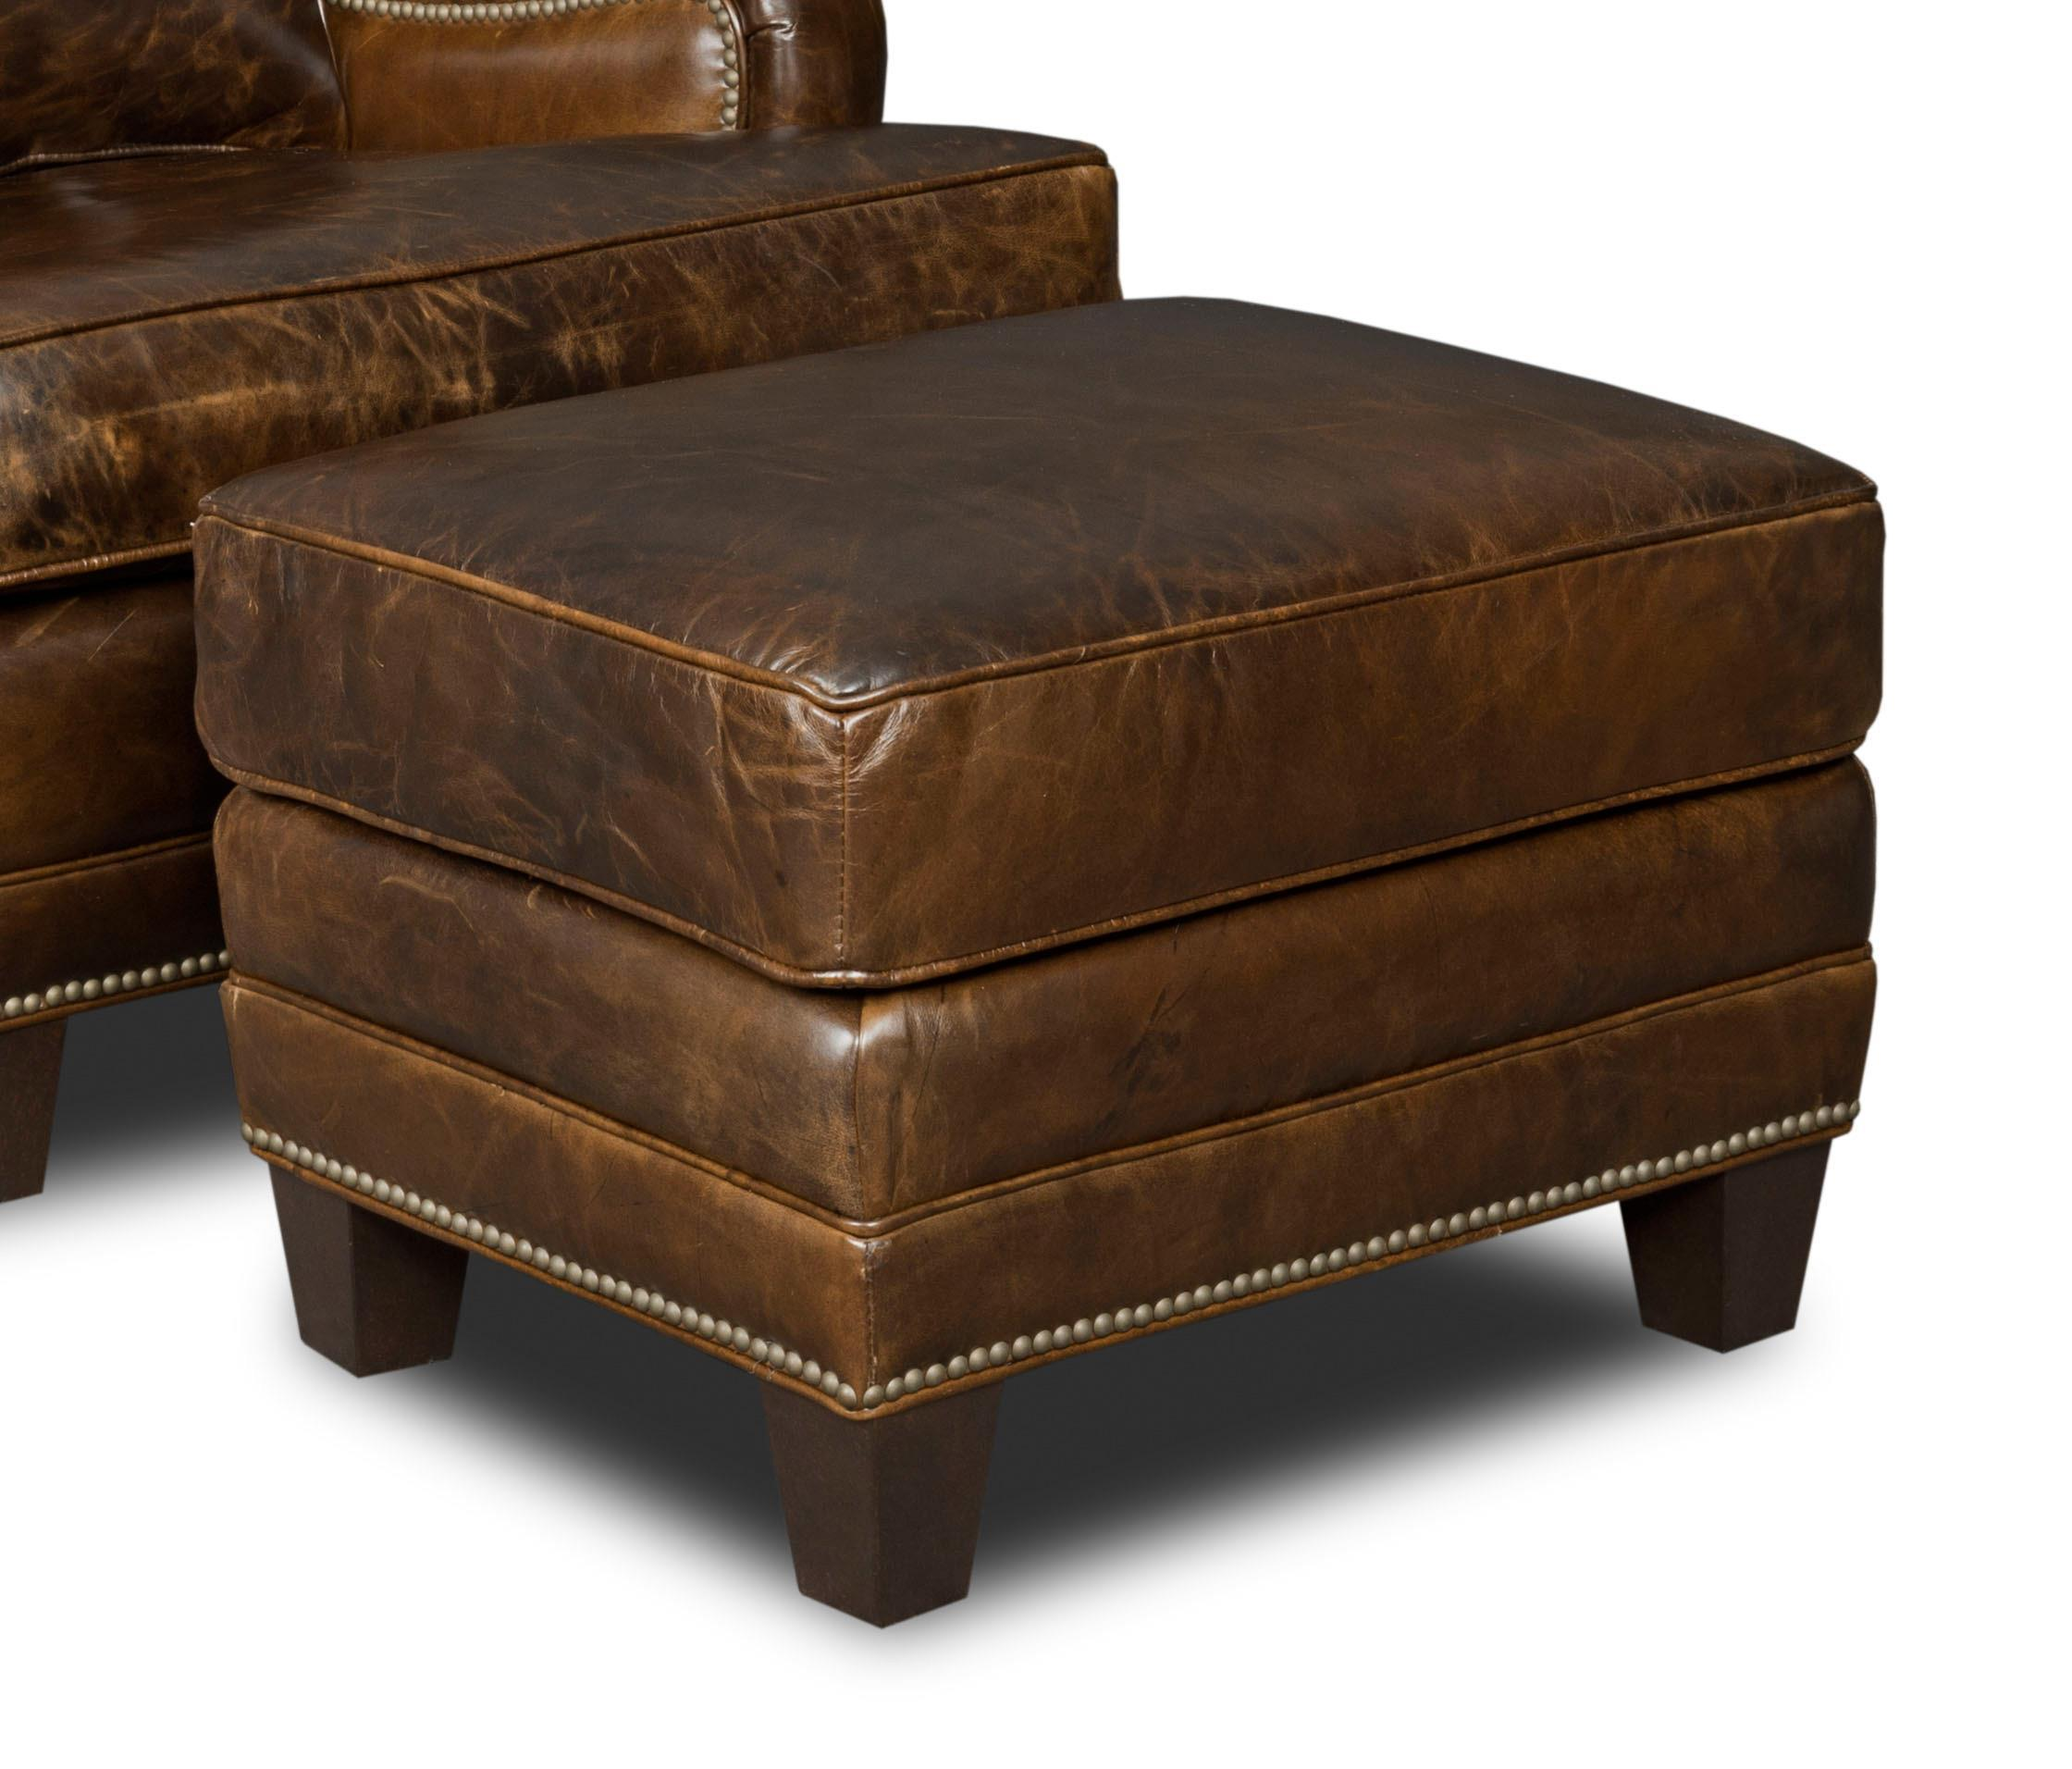 Hooker Furniture Club Chairs Ottoman - Item Number: CC403-OT-087